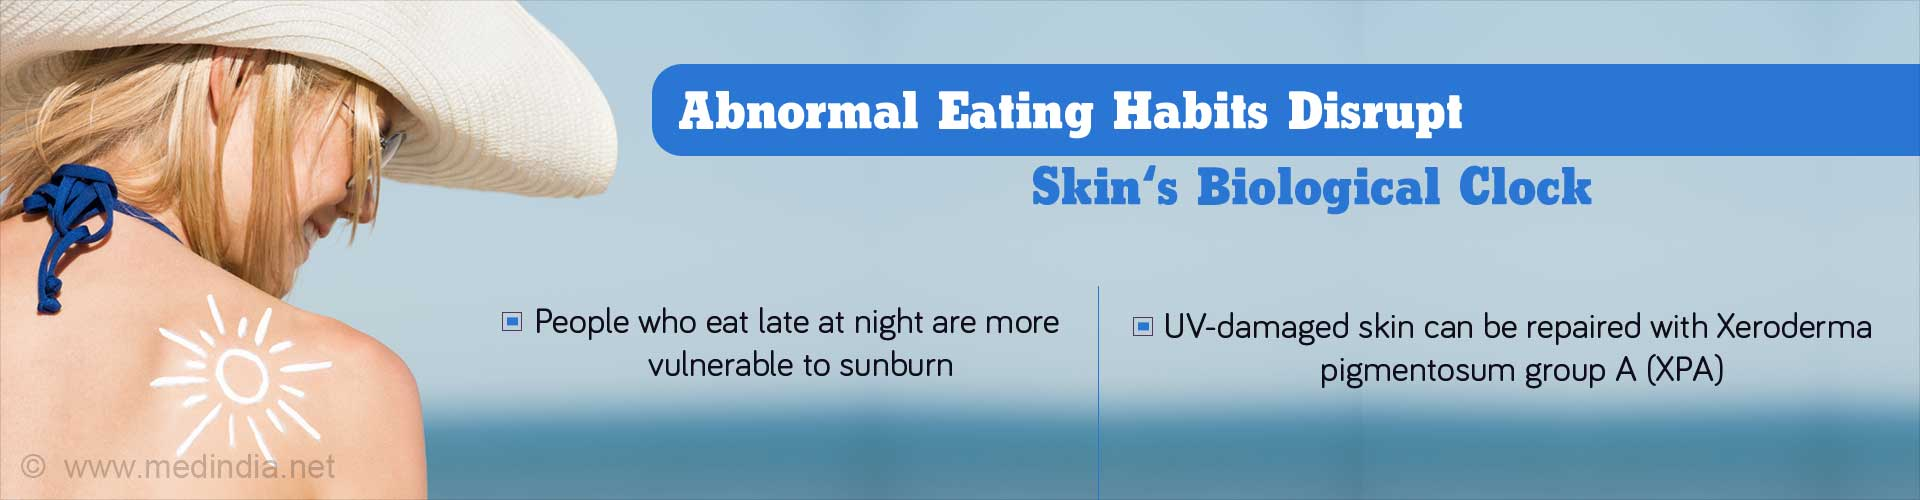 abnormal eating habits disrupt skin''s biological clock - people who eat late at night are more vulnerable to sunburn - UV damaged skin can be repaired with Xeroderma pigmentosum group A (XPA)